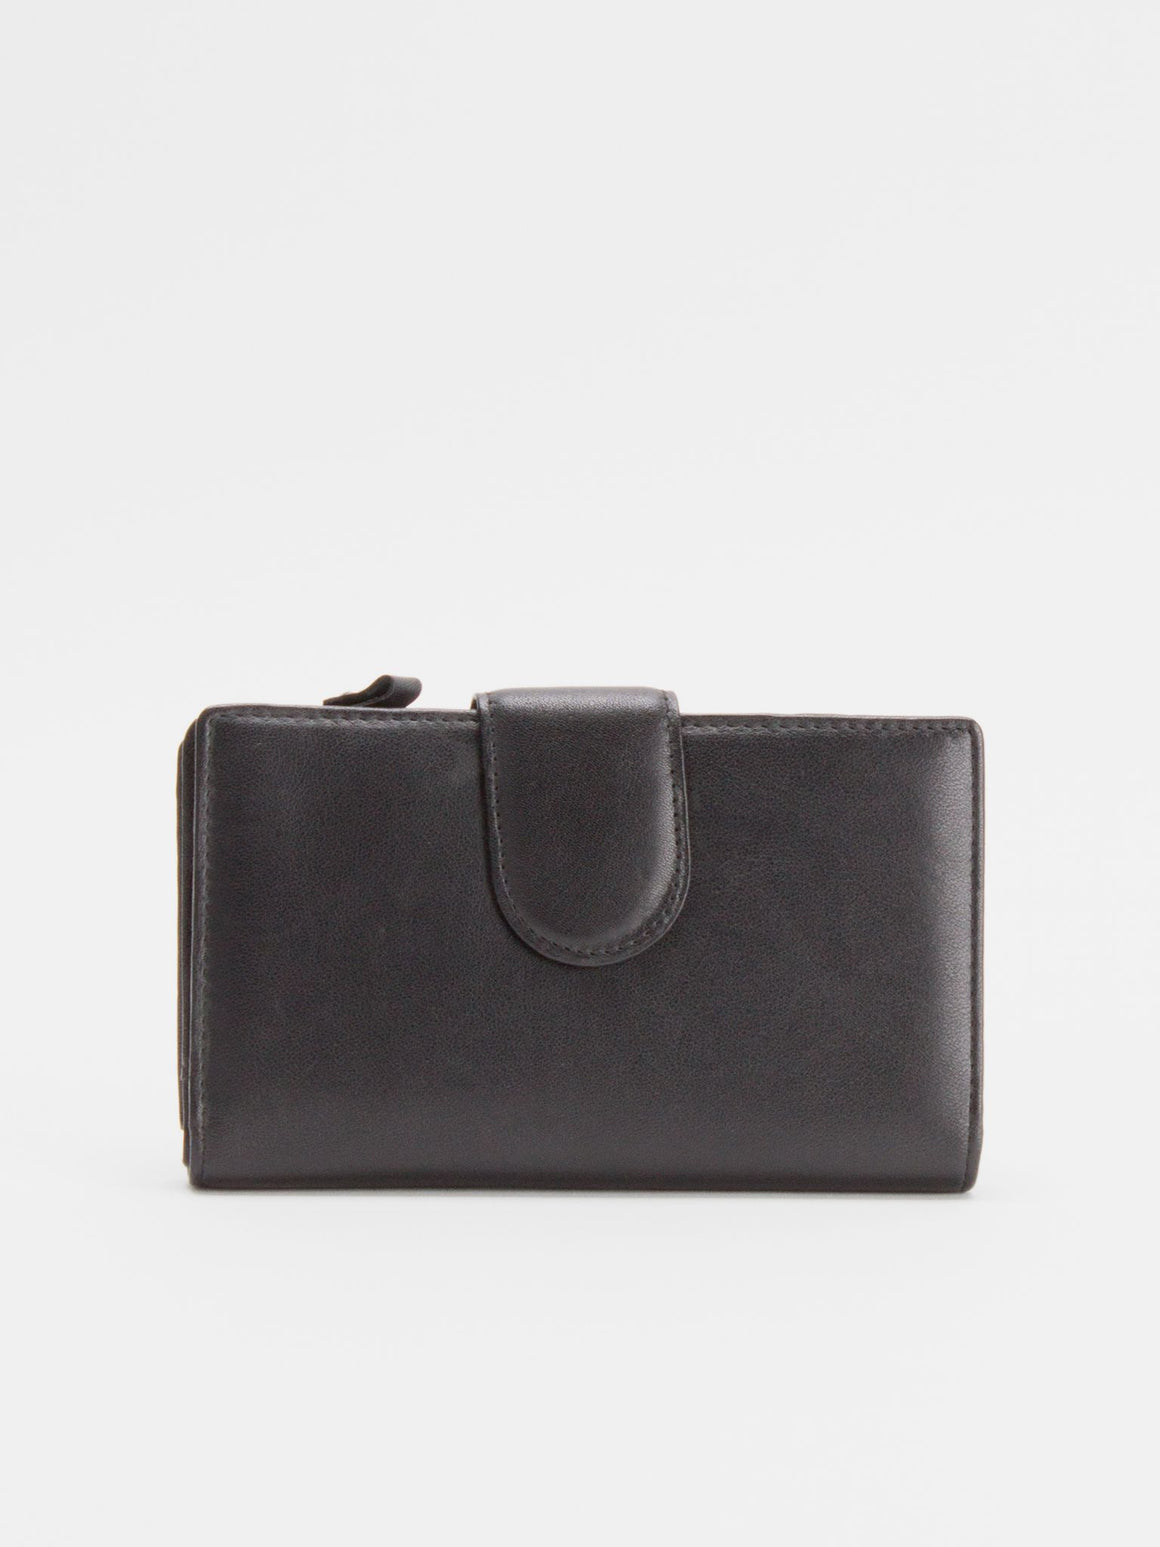 Oxford Leather Medium Wallet - Black